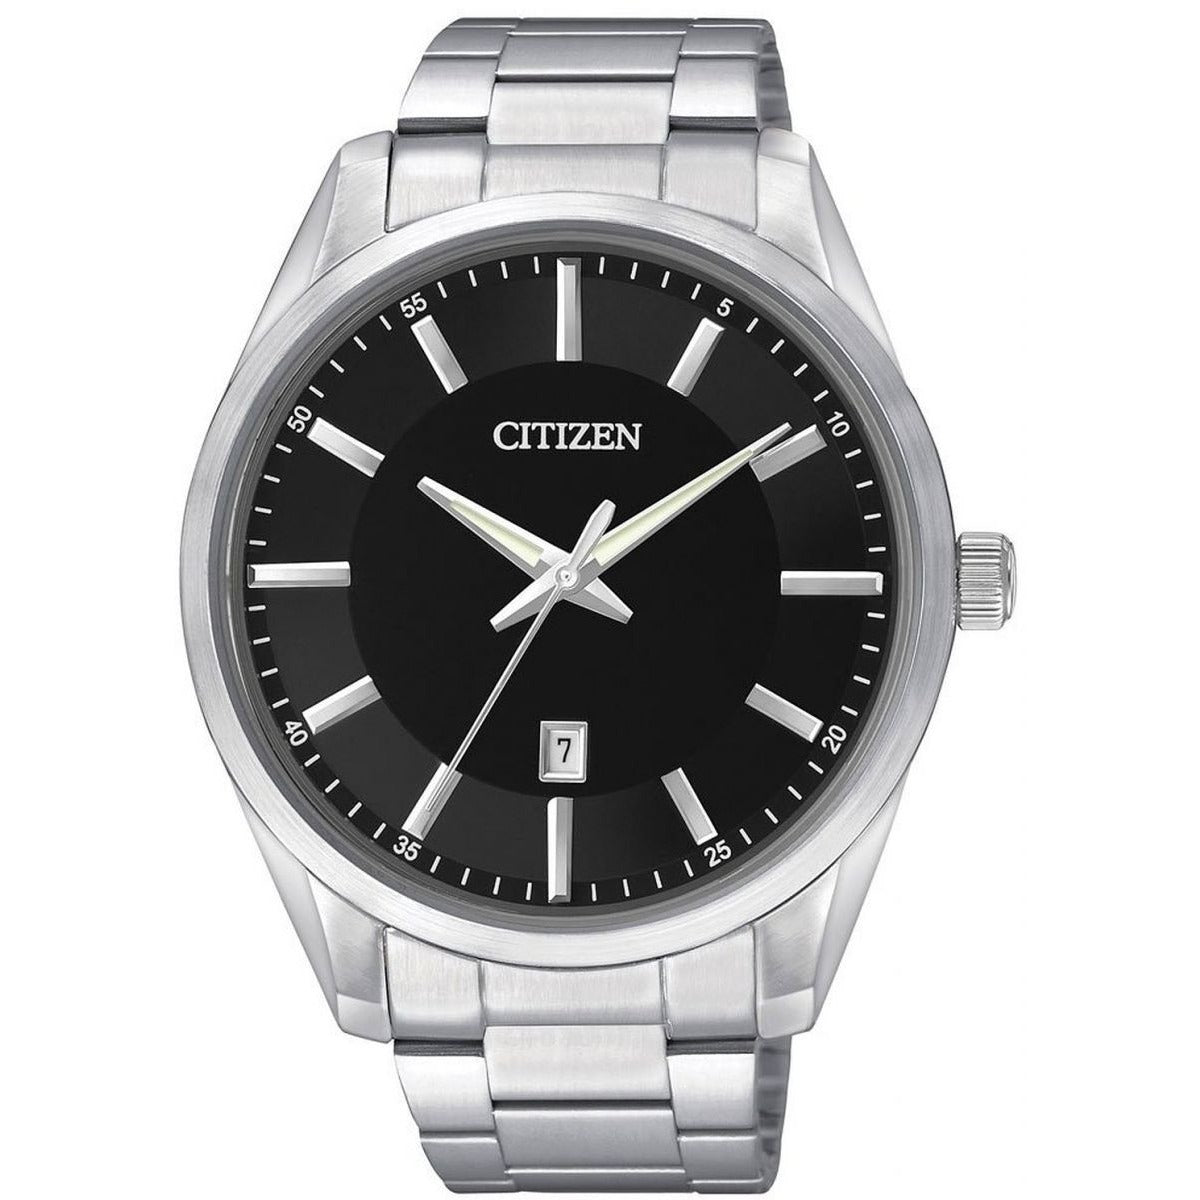 Citizen BI1030-53E Men's Black Dial Watch